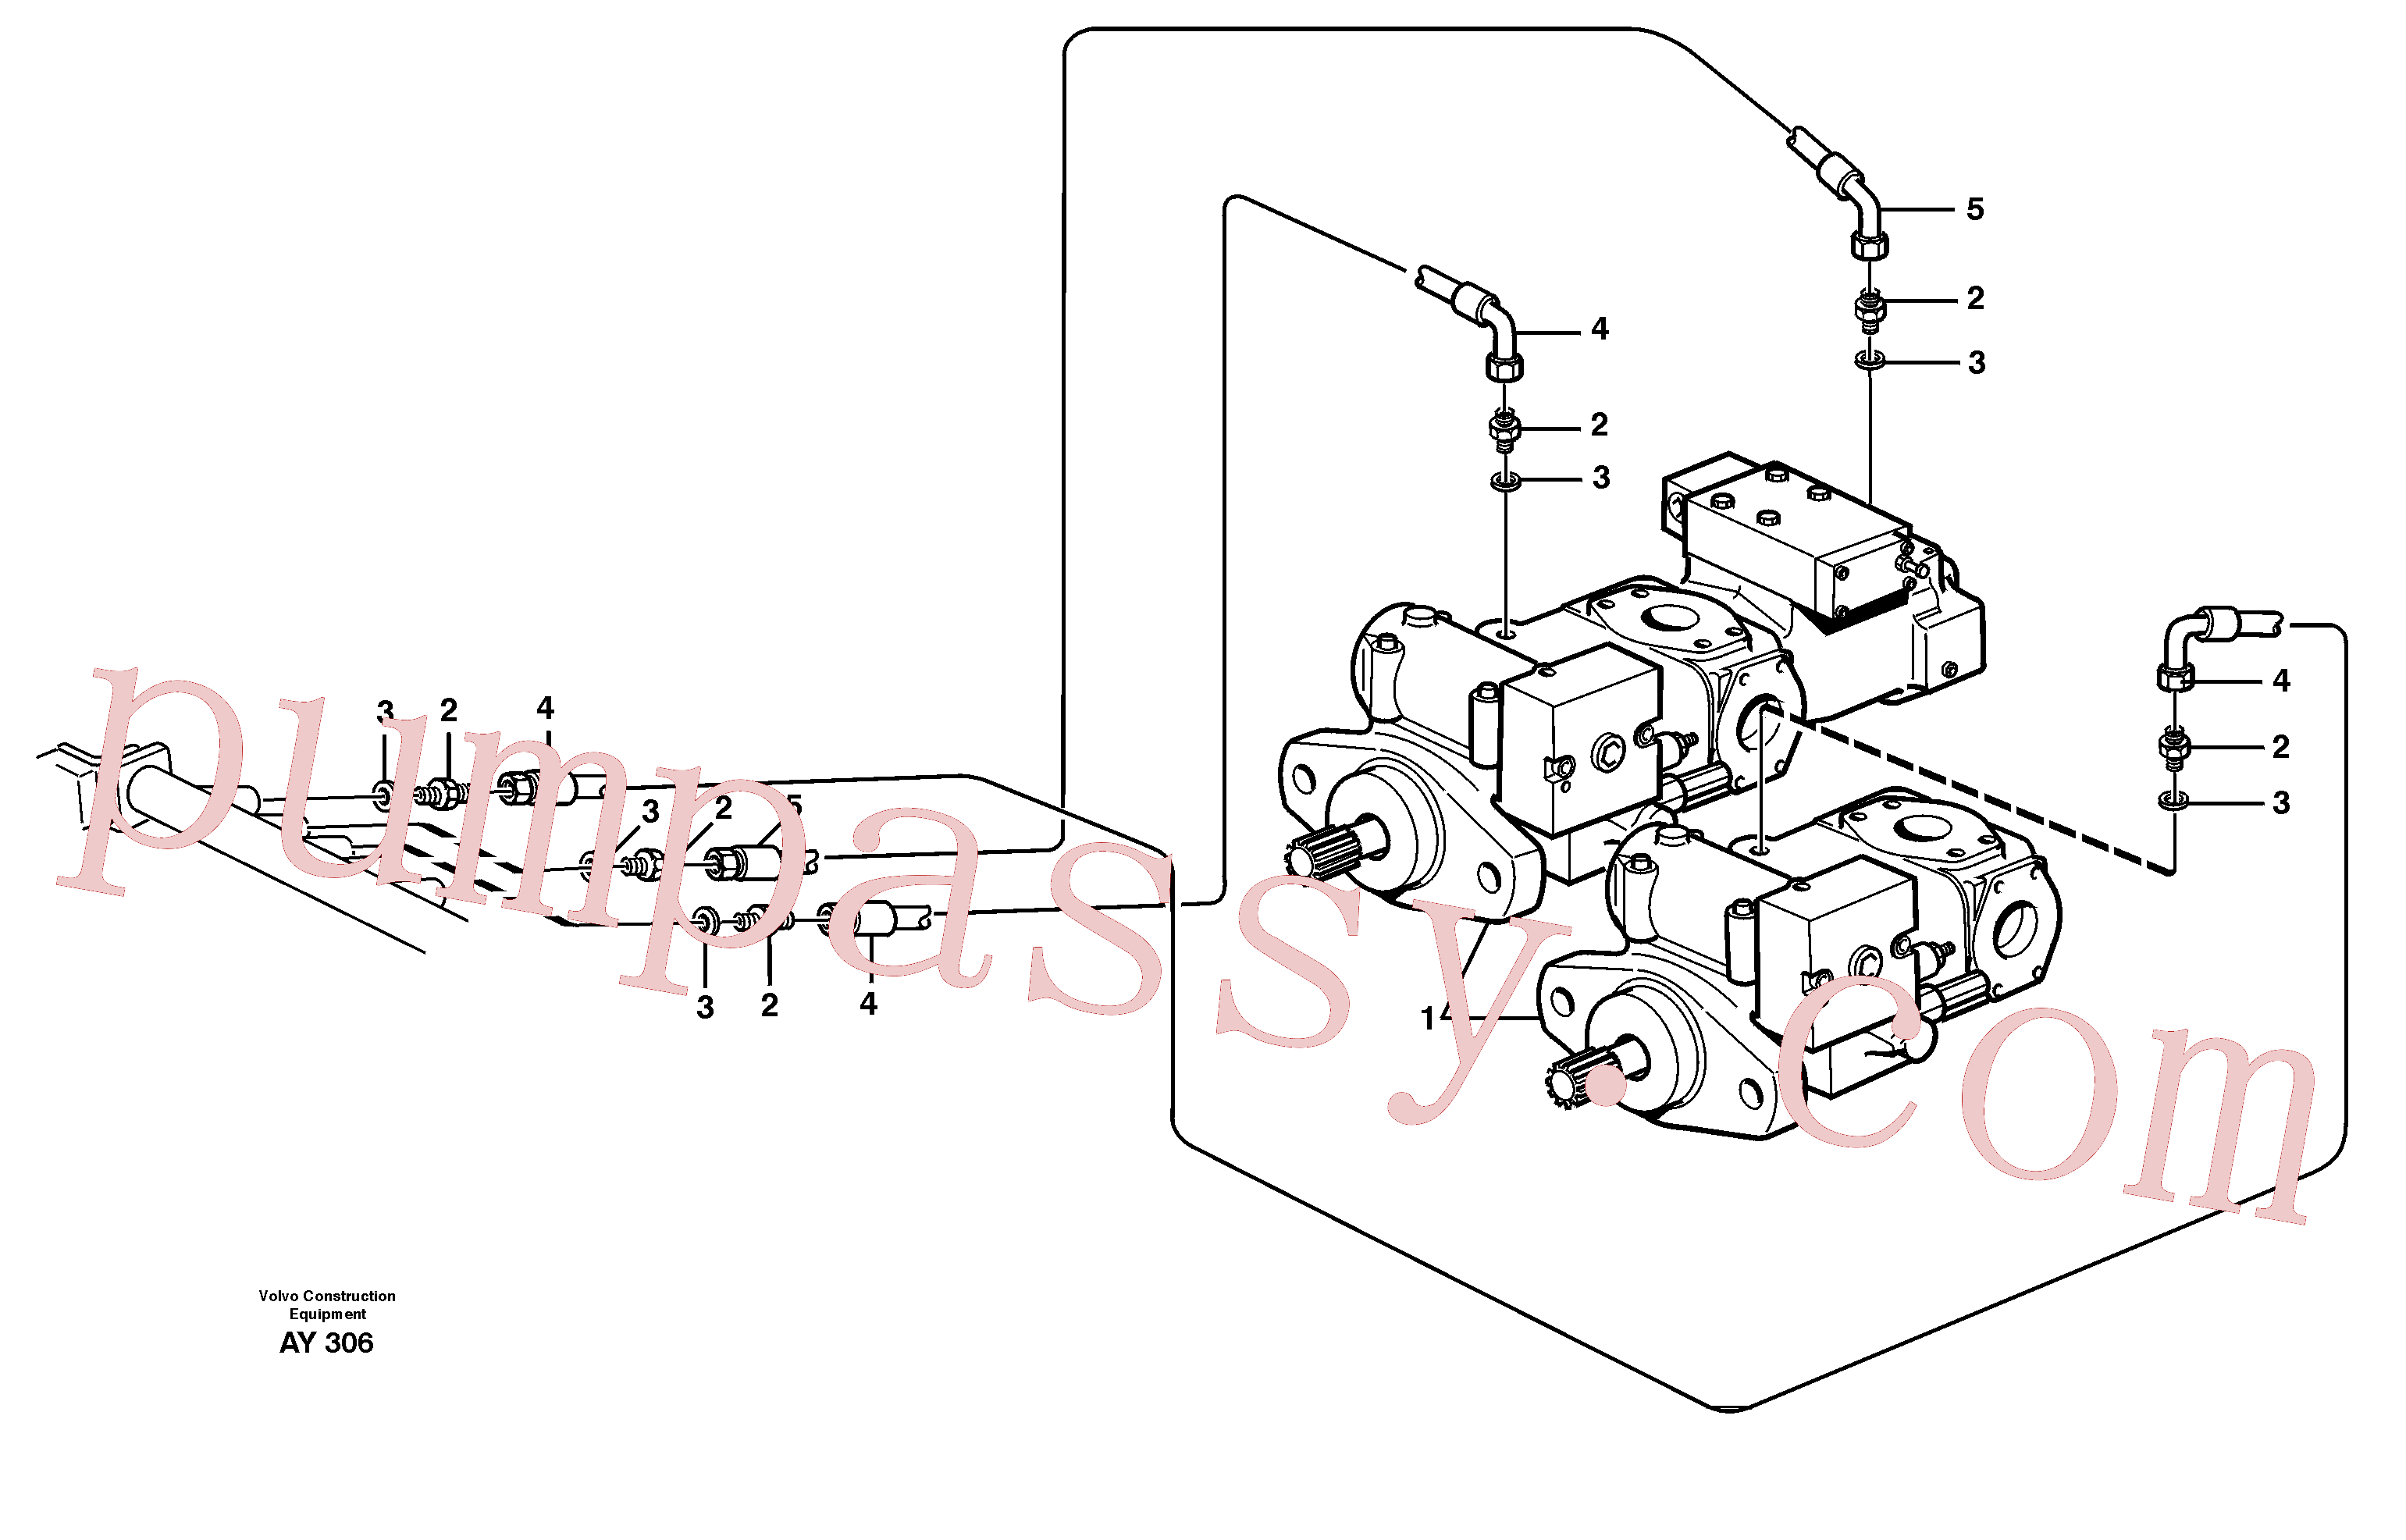 VOE11163029 for Volvo Hydraulic system, leak-off line from pump to tank(AY306 assembly)